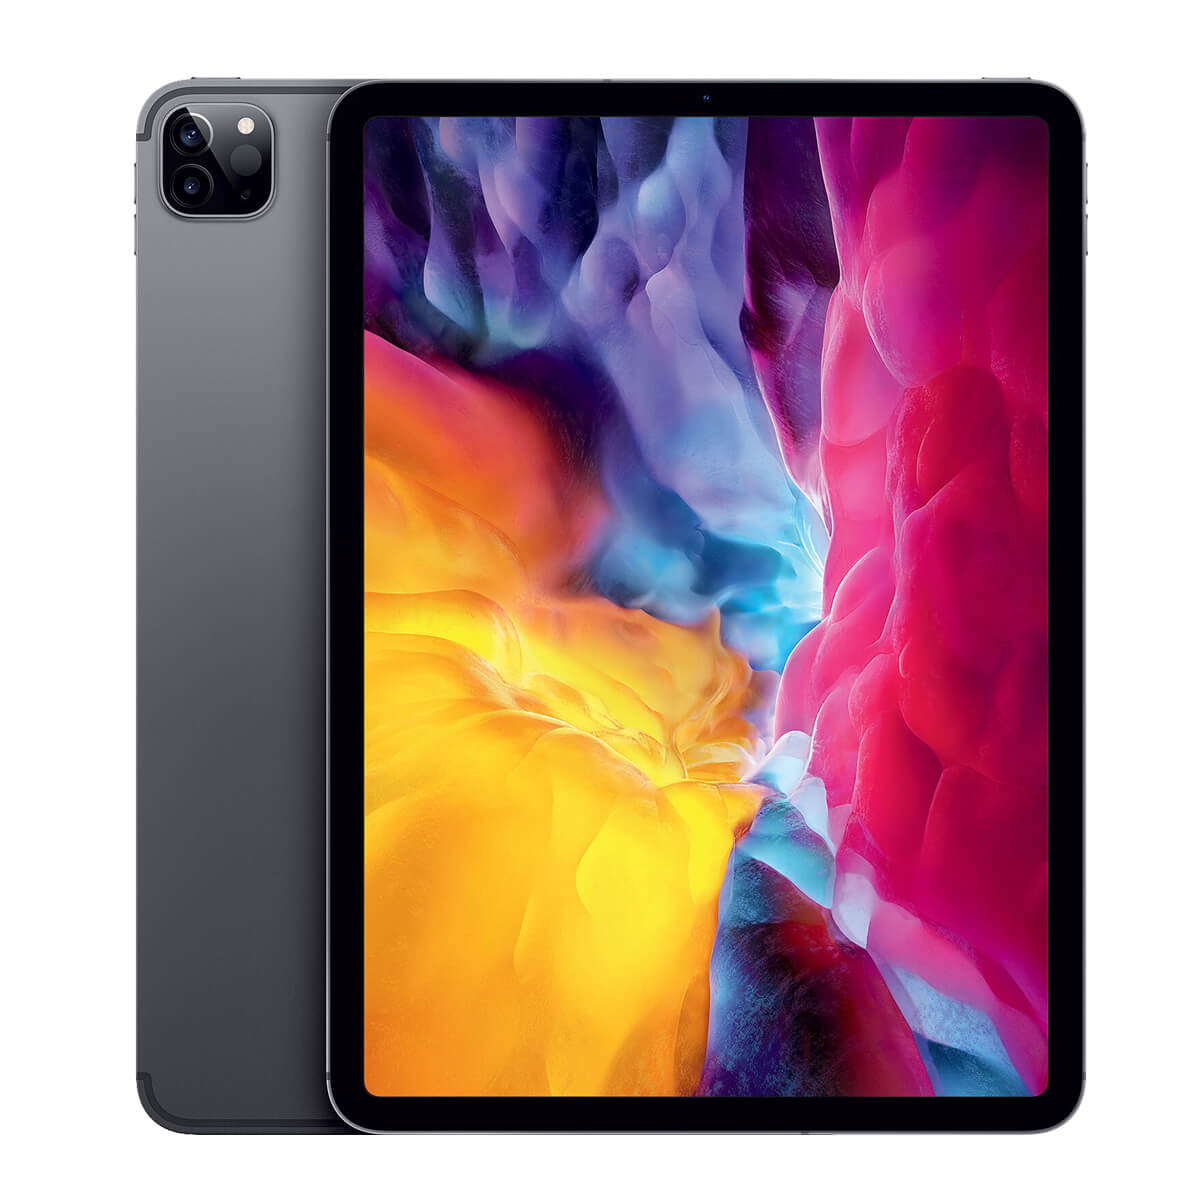 APPLE平板 iPad Pro 11 2代 Wi-Fi (512G)